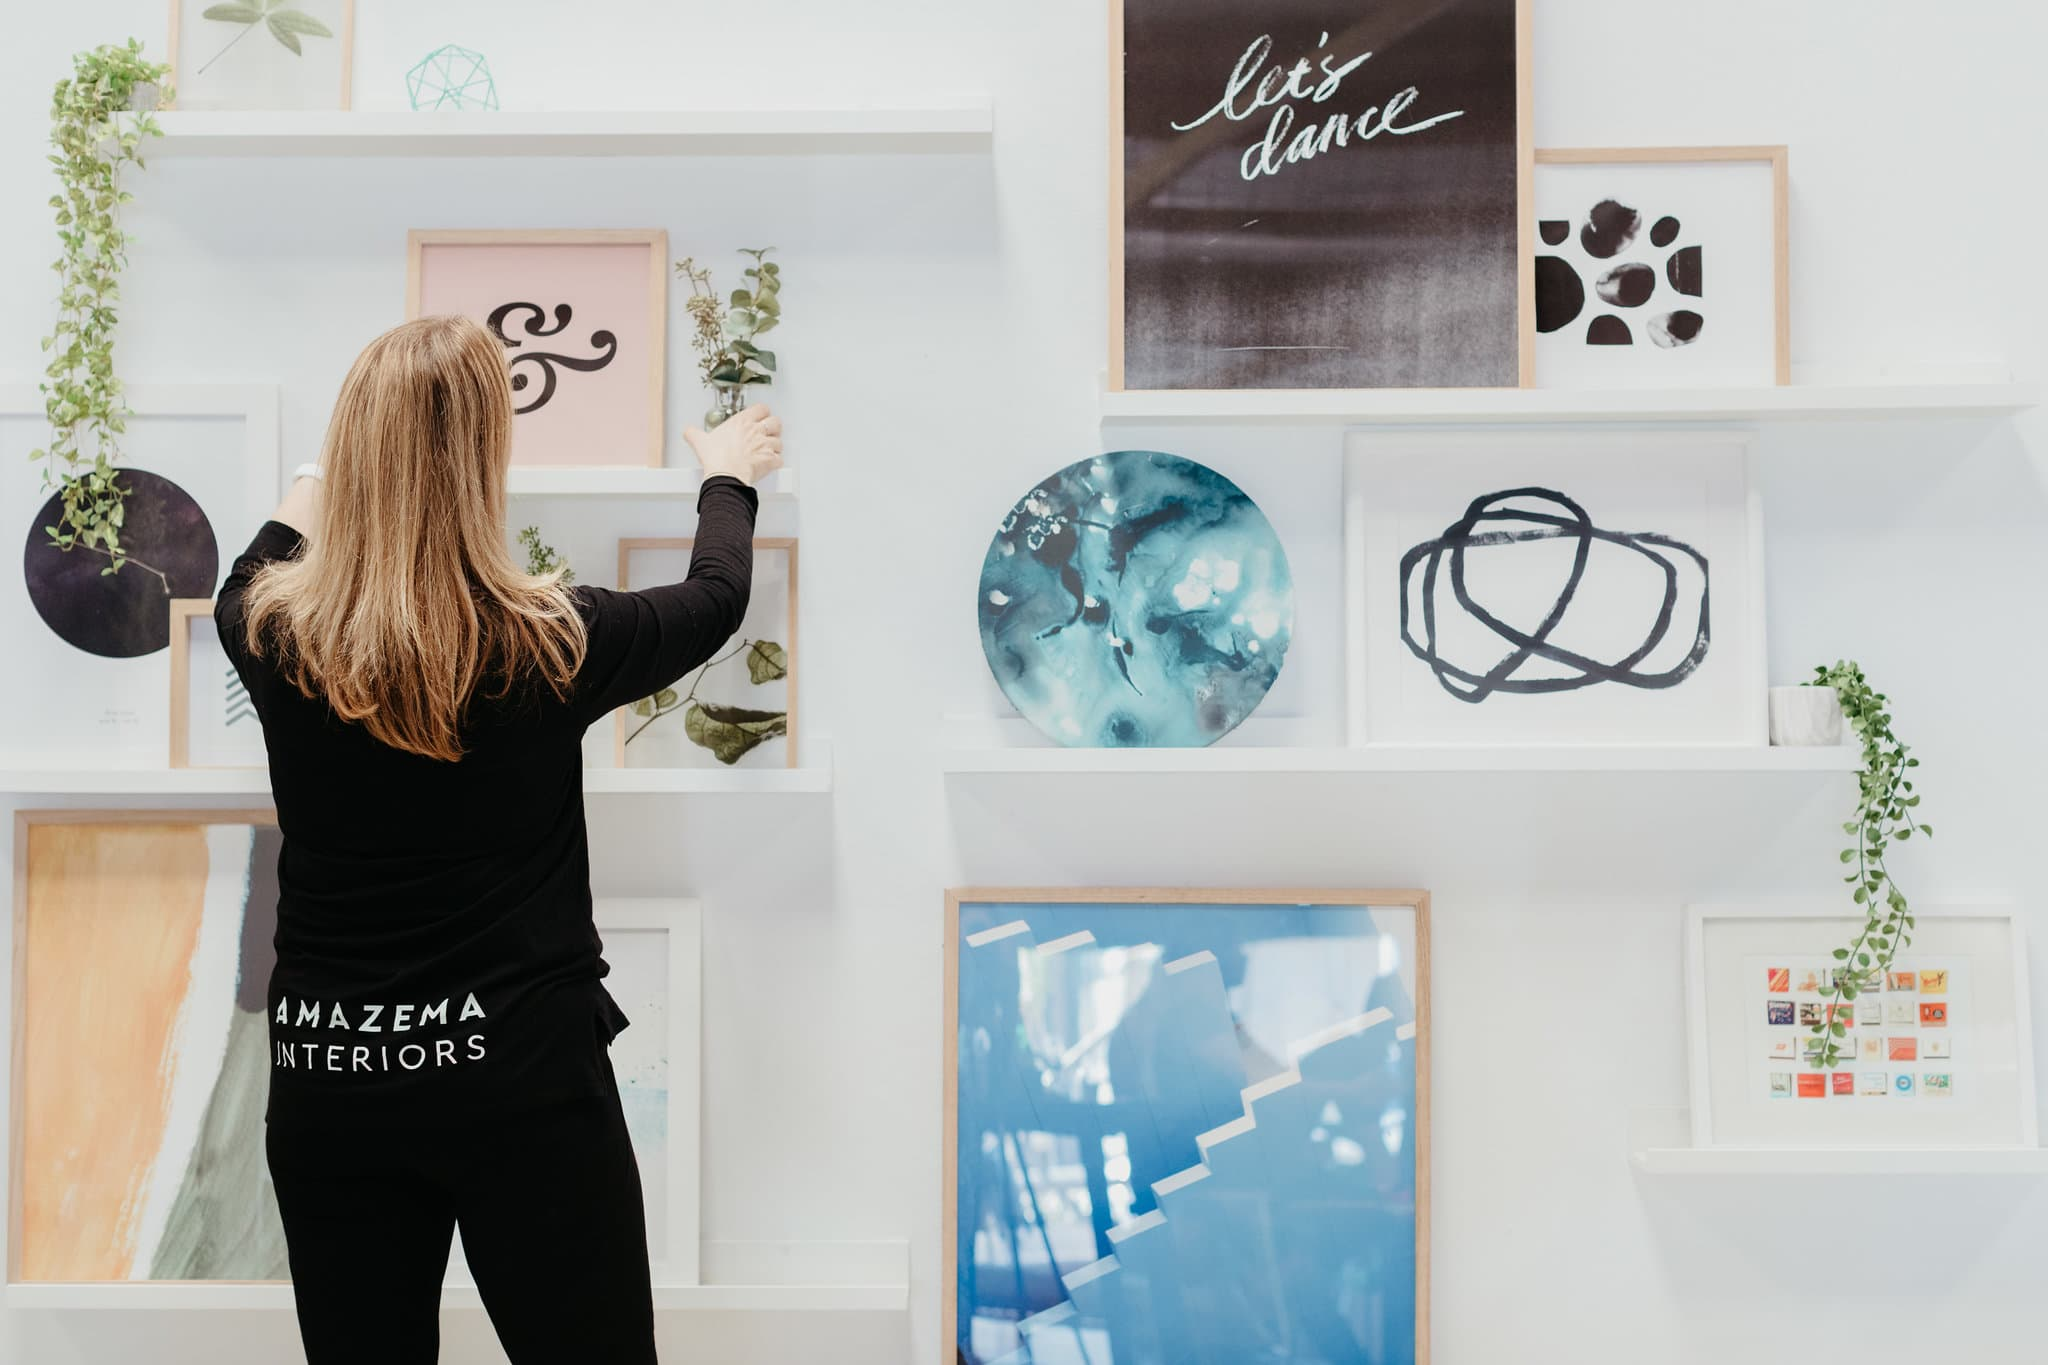 Image of Amy from Amazema styling a feature wall